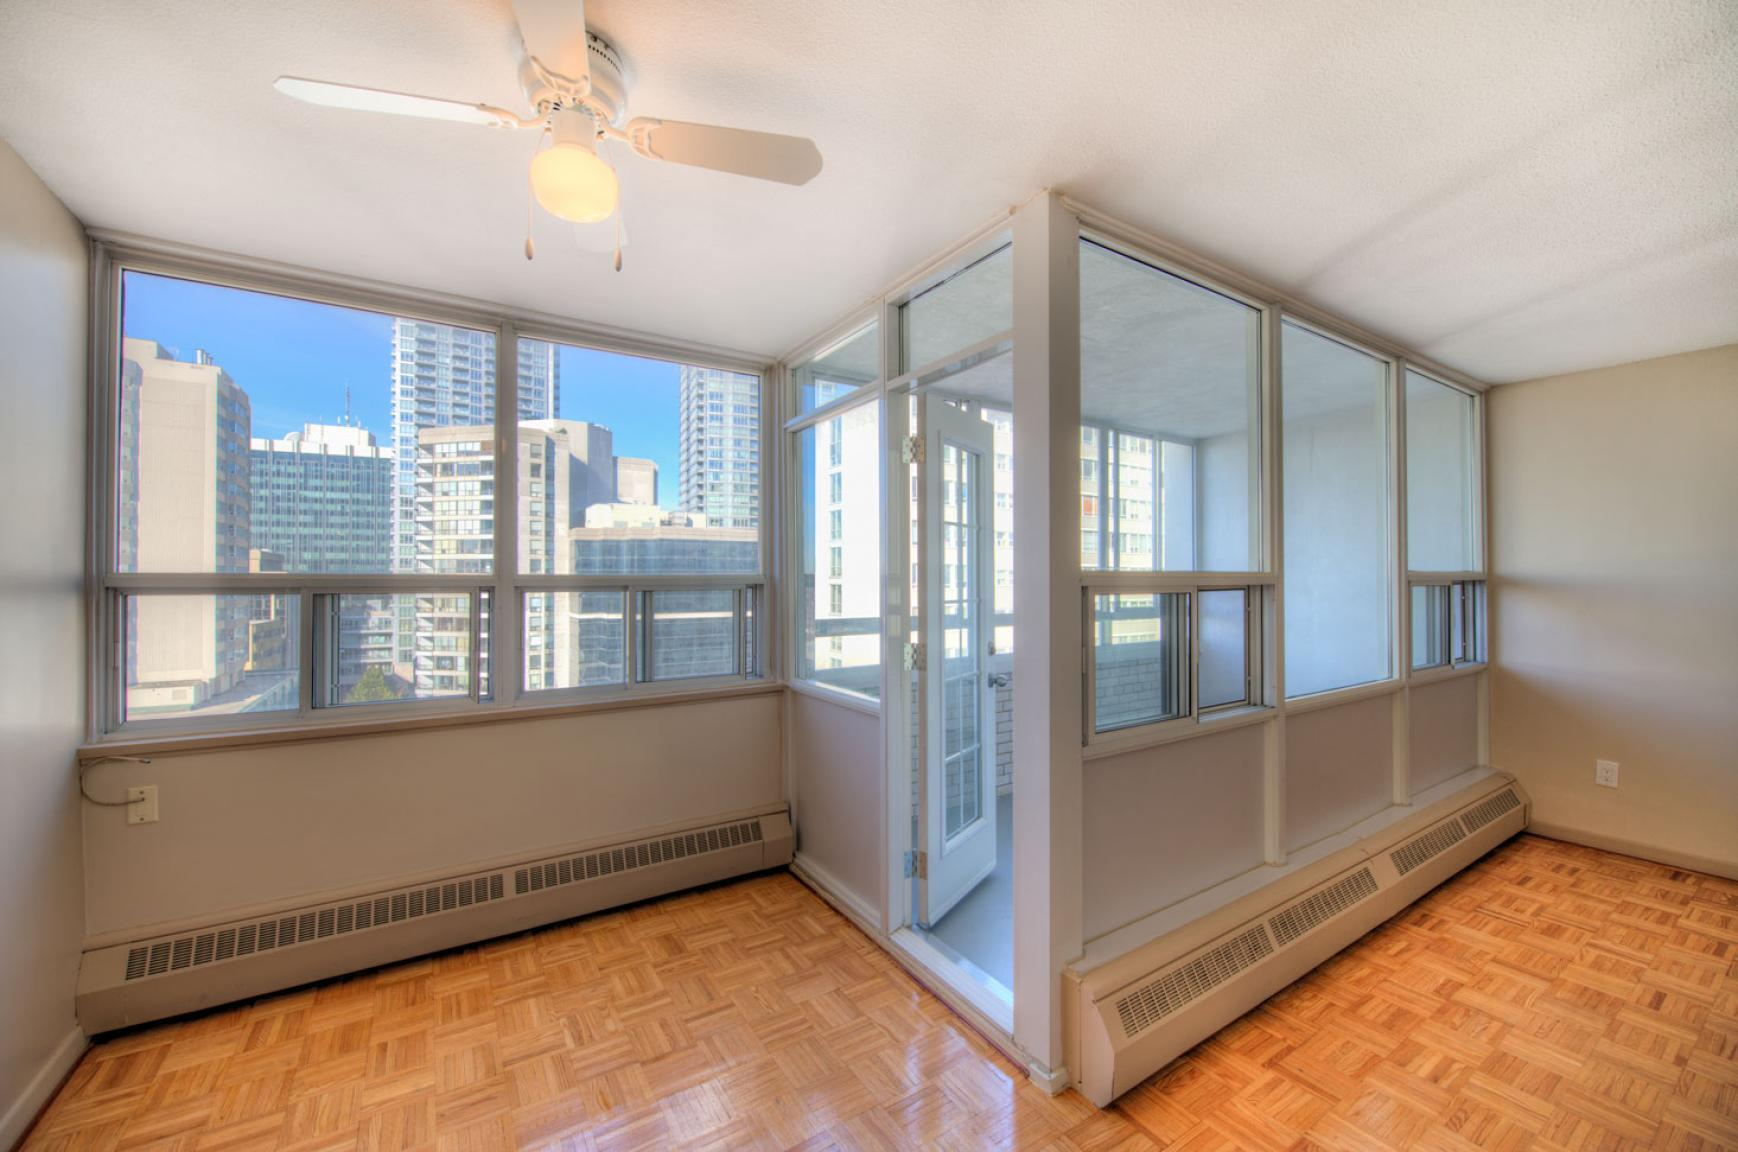 Studio / Bachelor Apartments for rent in Toronto at Dunfield Tower - Photo 16 - RentersPages – L138878